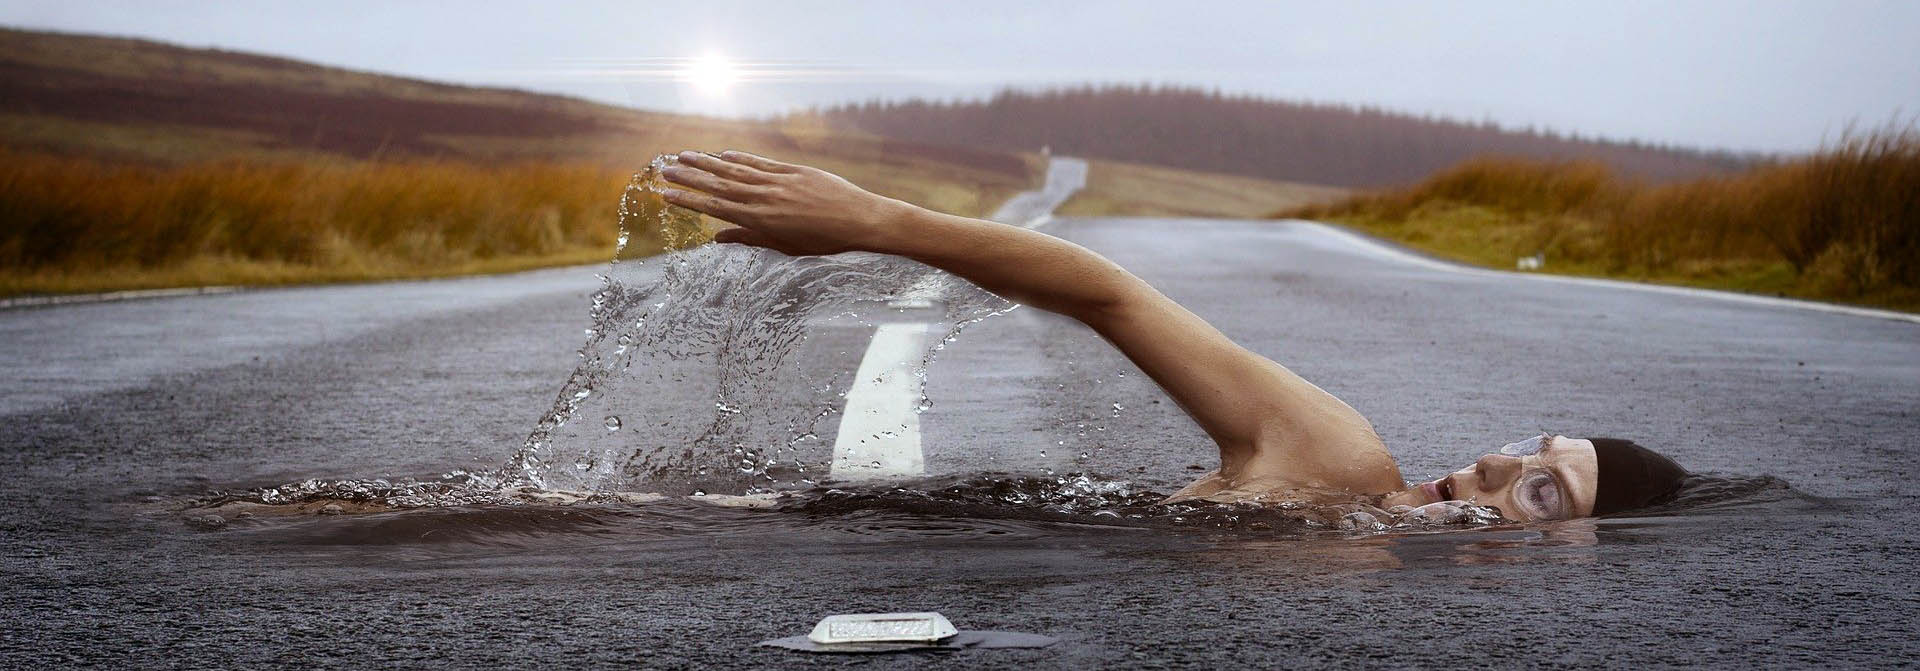 """TT Strange Times: Let's hope the weather this summer isn't bad enough to consider """"road swimming"""" as an acceptable sport!"""